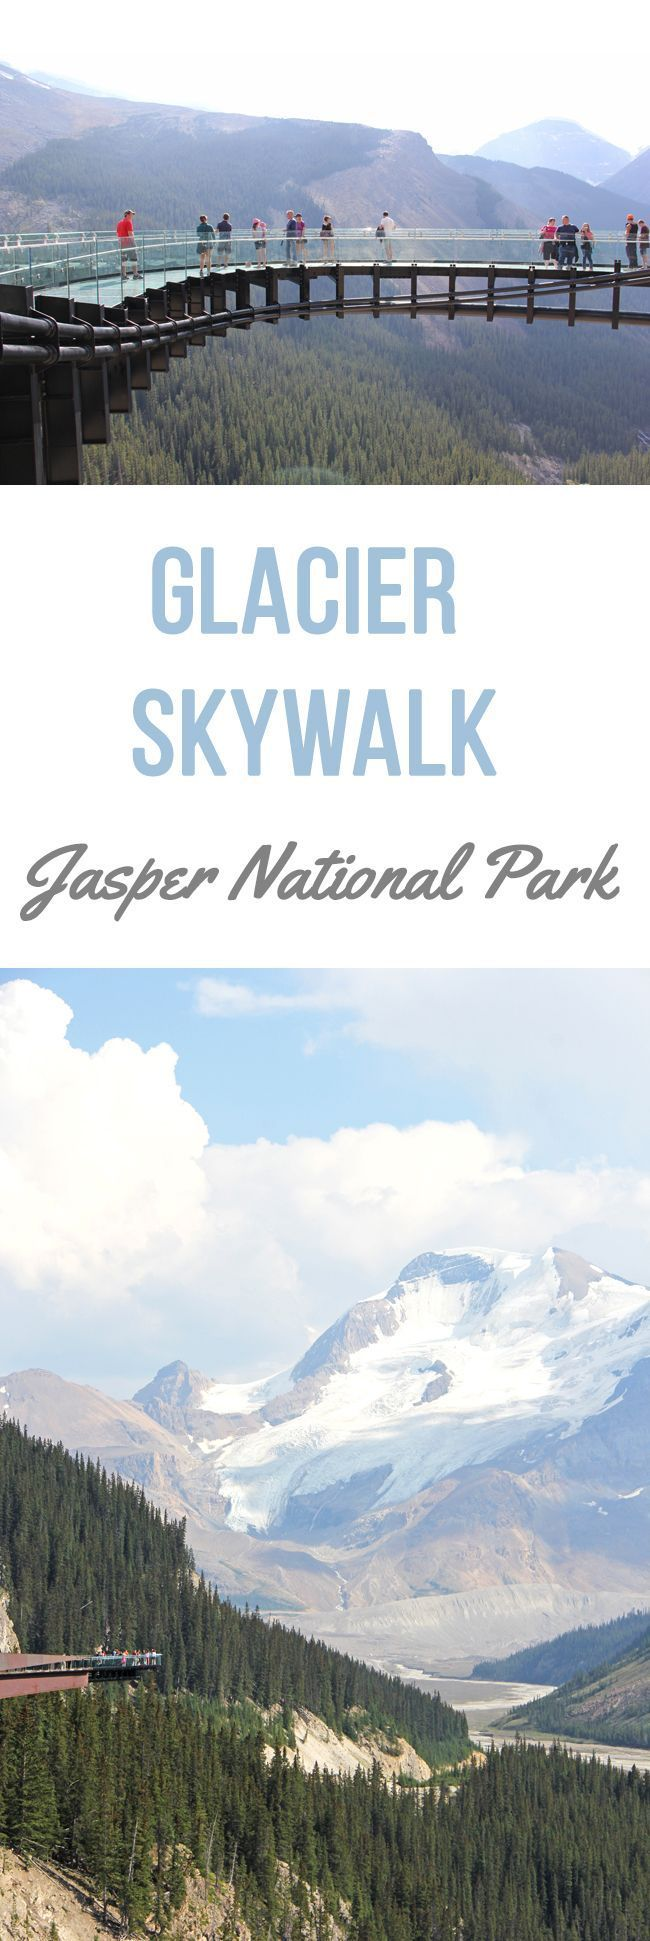 Glacier Skywalk, Jasper National Park – #Glacier #…